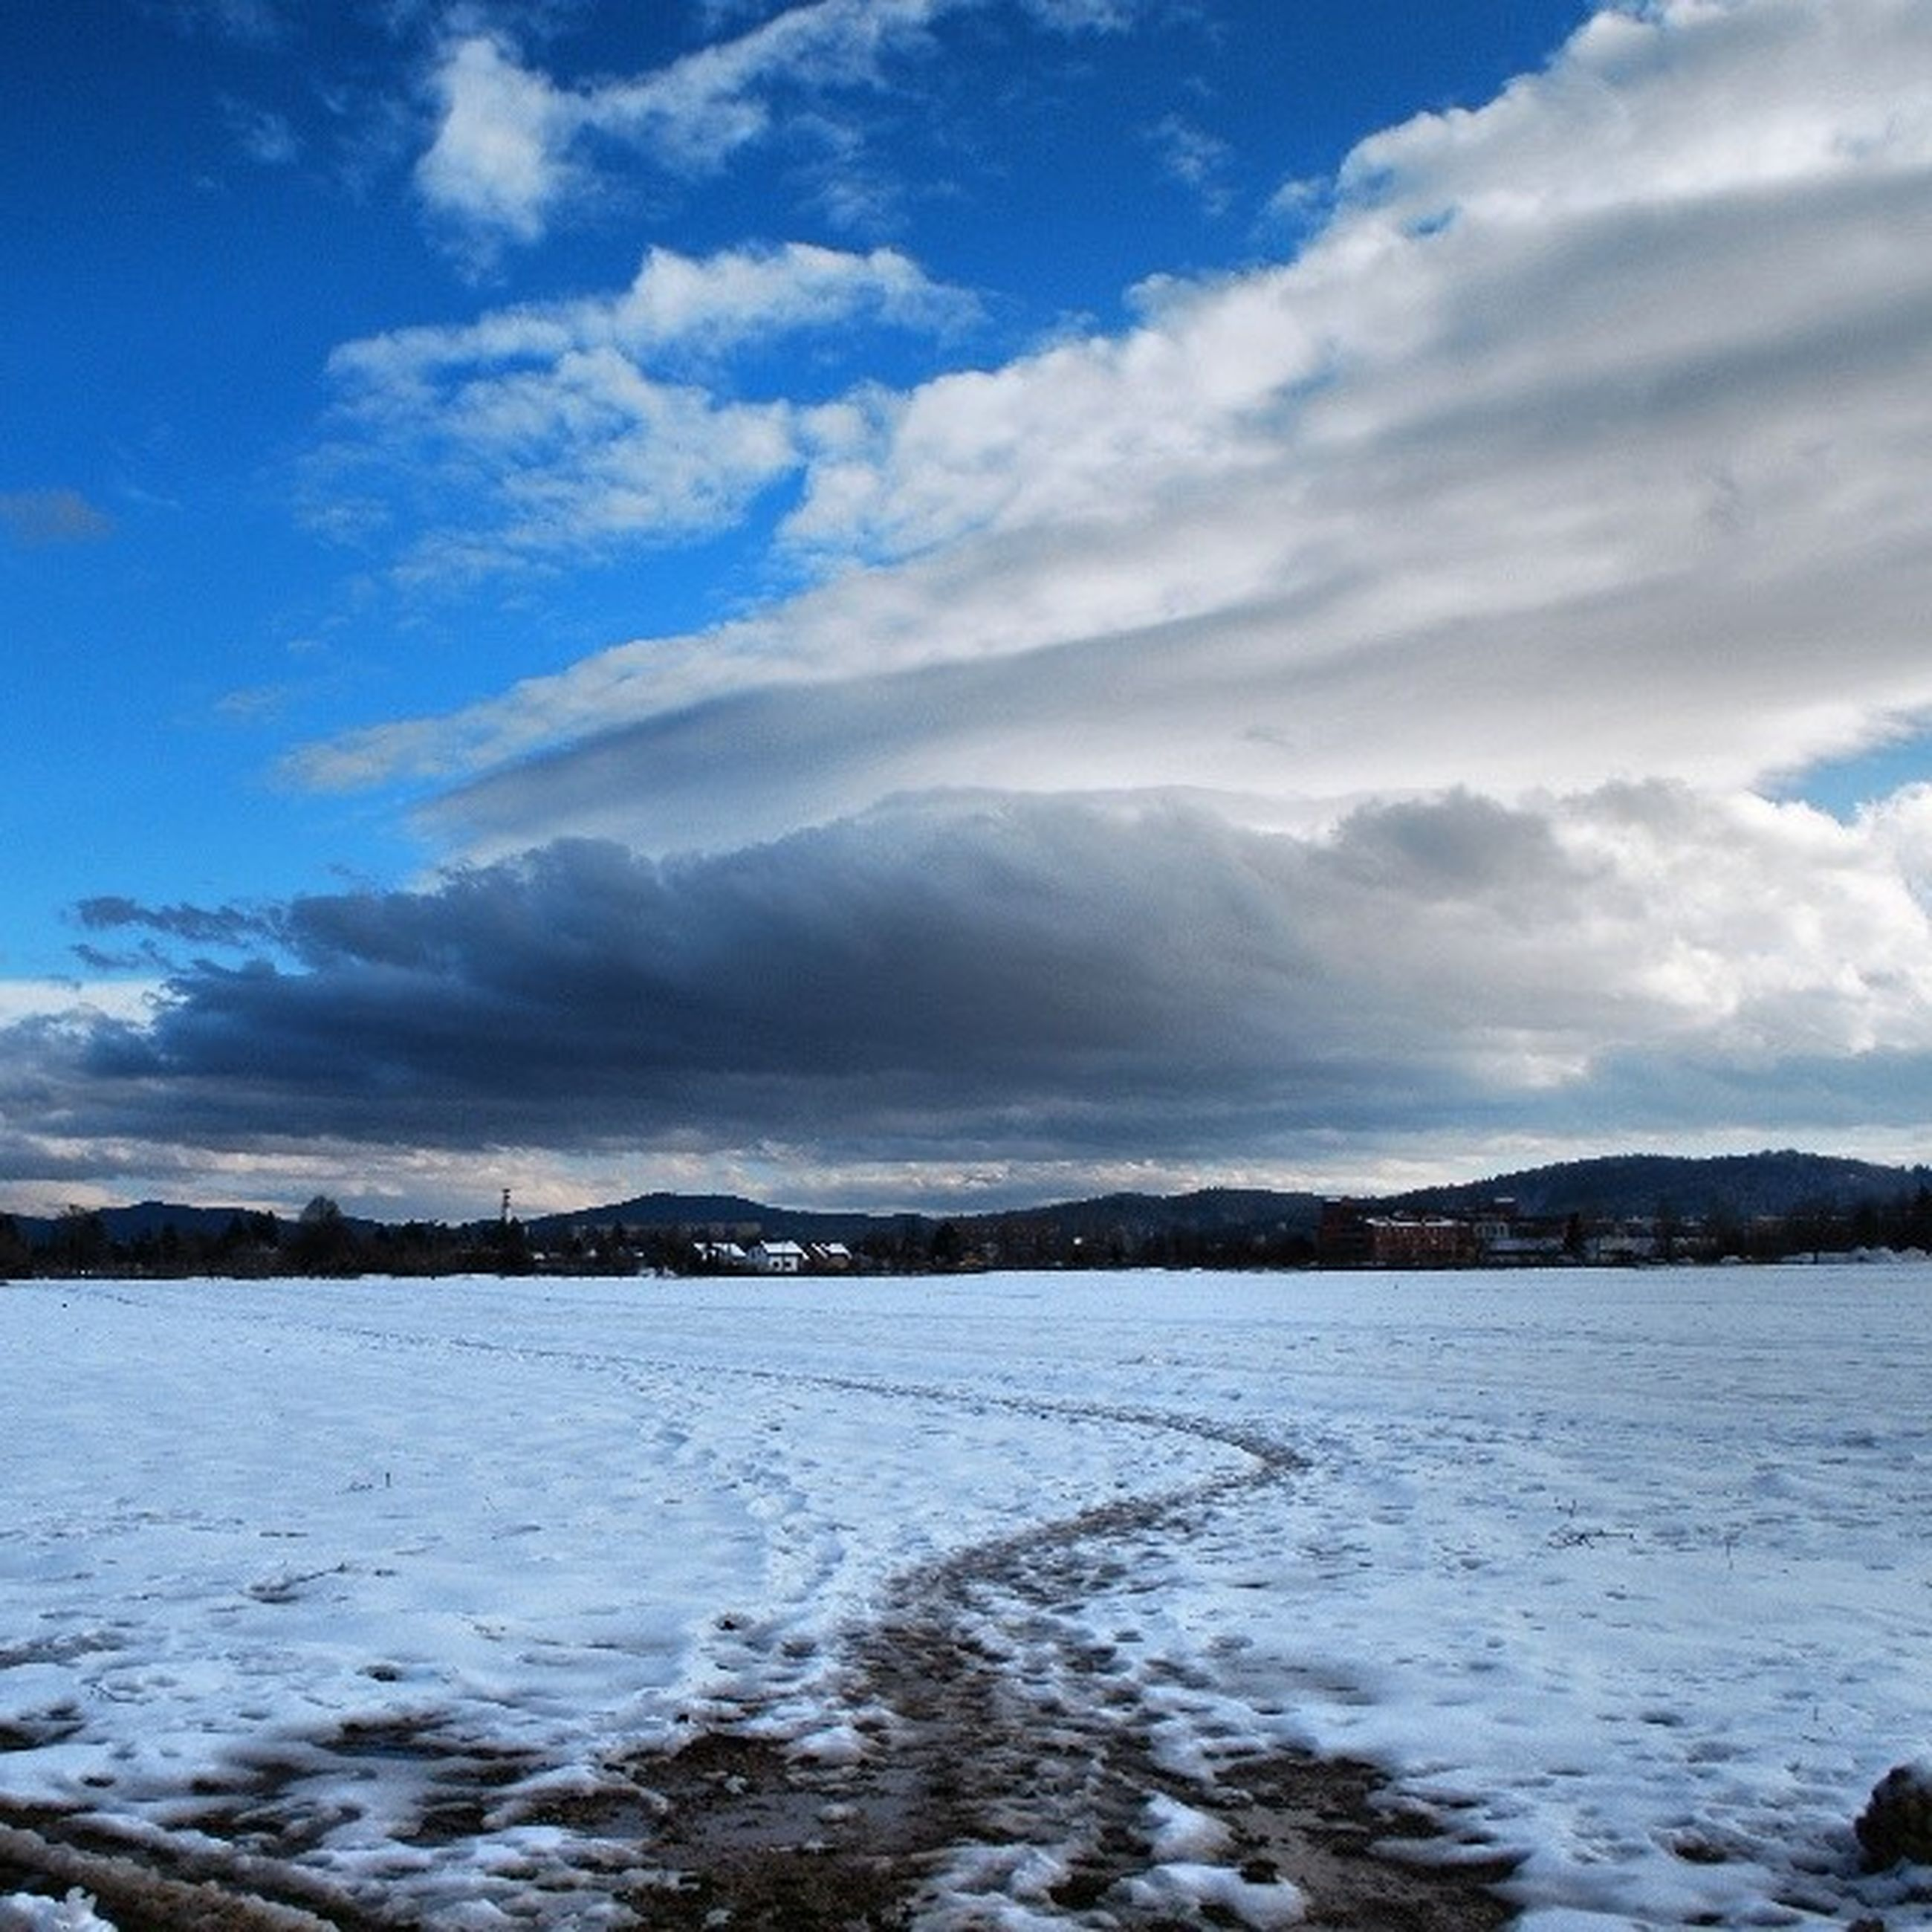 water, tranquil scene, sky, tranquility, scenics, beauty in nature, nature, cloud - sky, cloud, sea, lake, blue, waterfront, winter, snow, cold temperature, idyllic, outdoors, non-urban scene, landscape